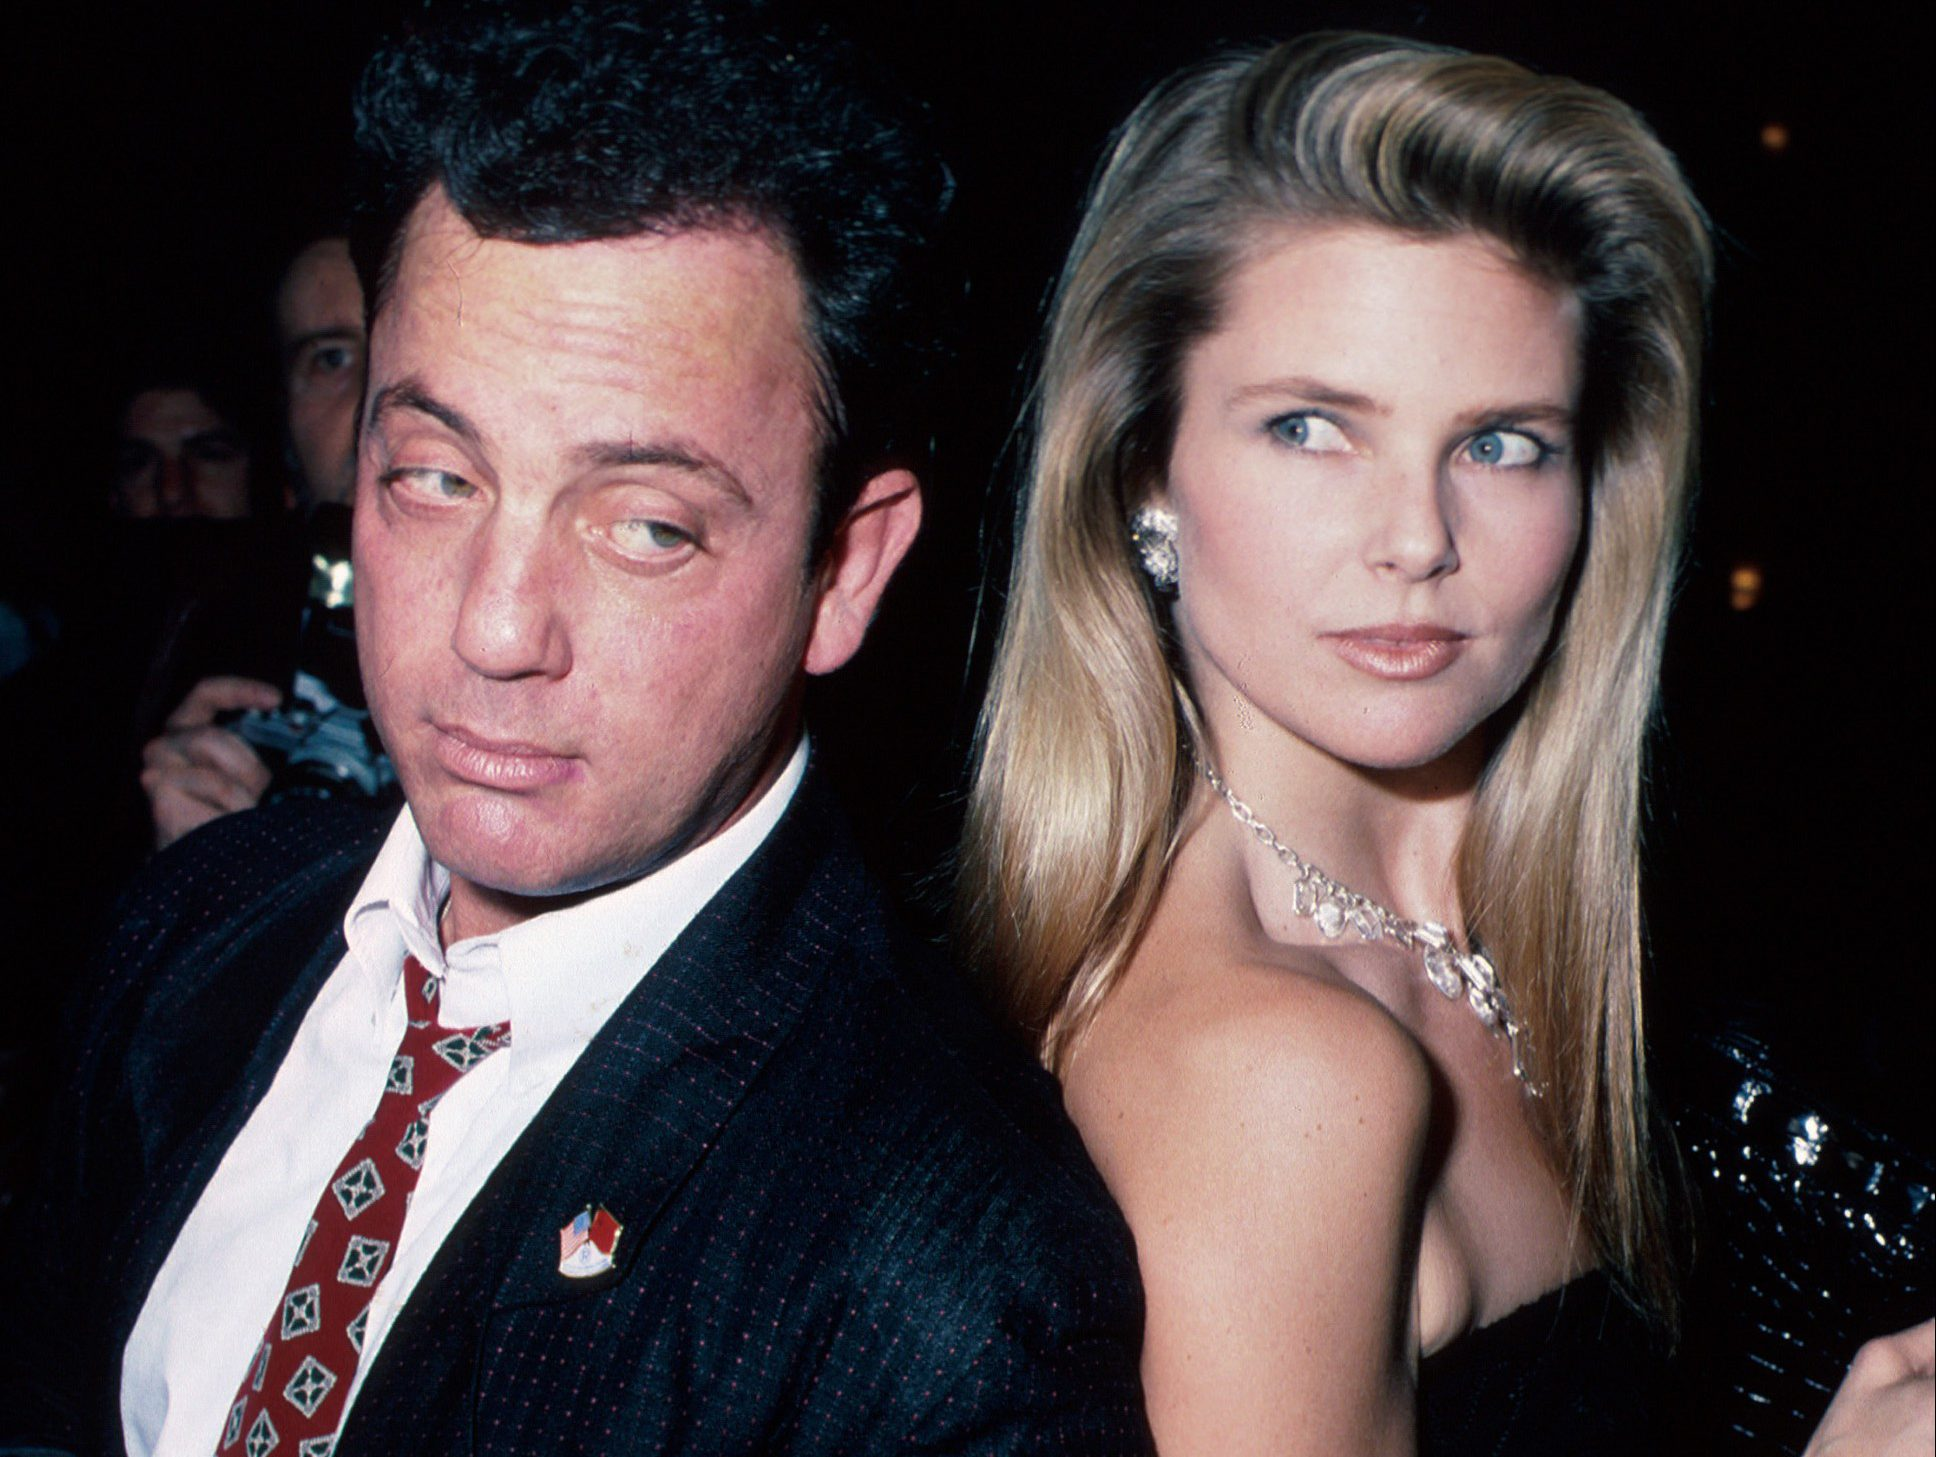 17 8 e1625569960438 The Top 10 Power Couples Of The 1980s